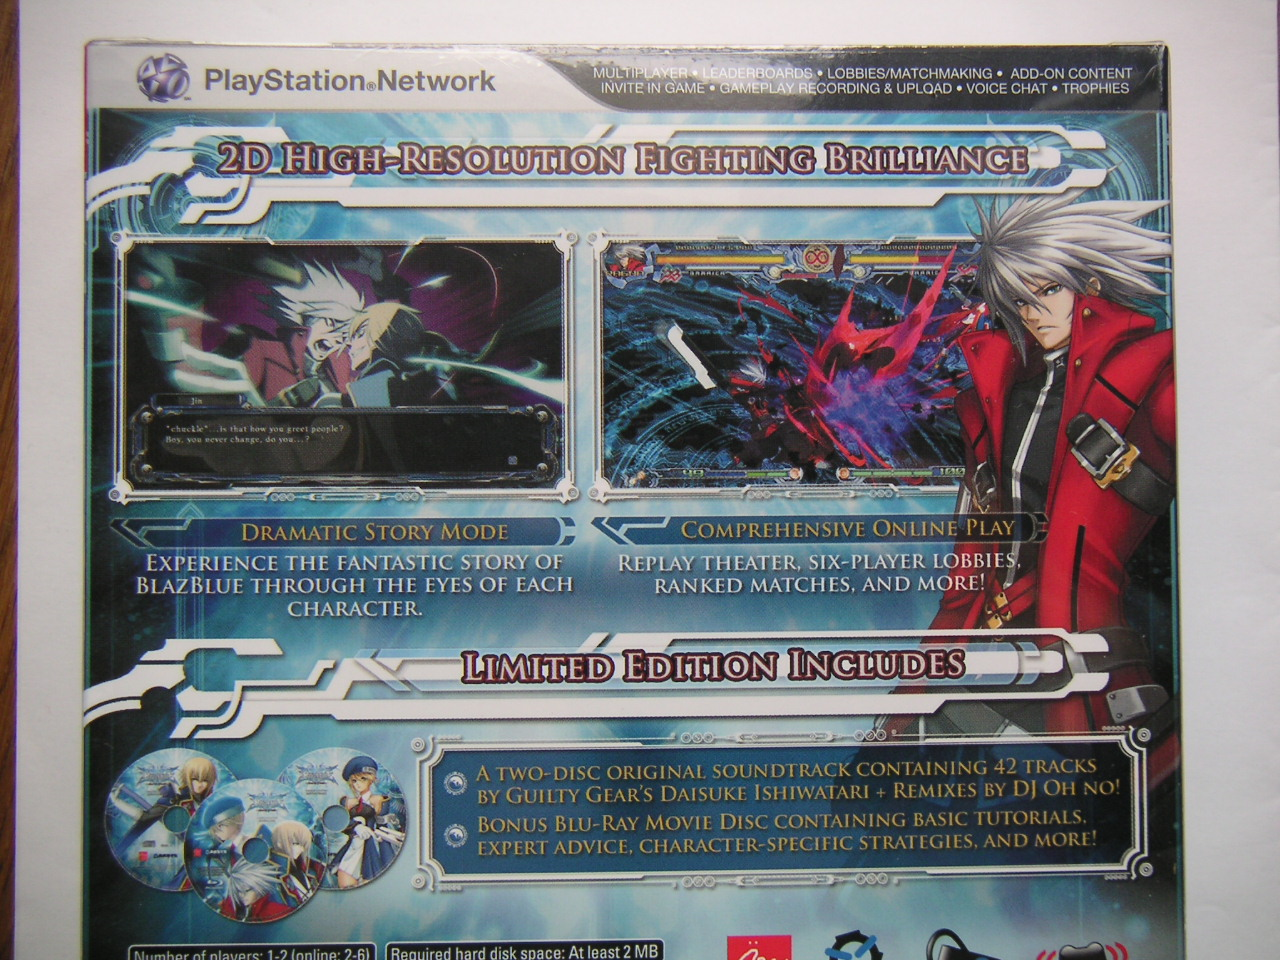 blazblue-limited-esition-03.jpg